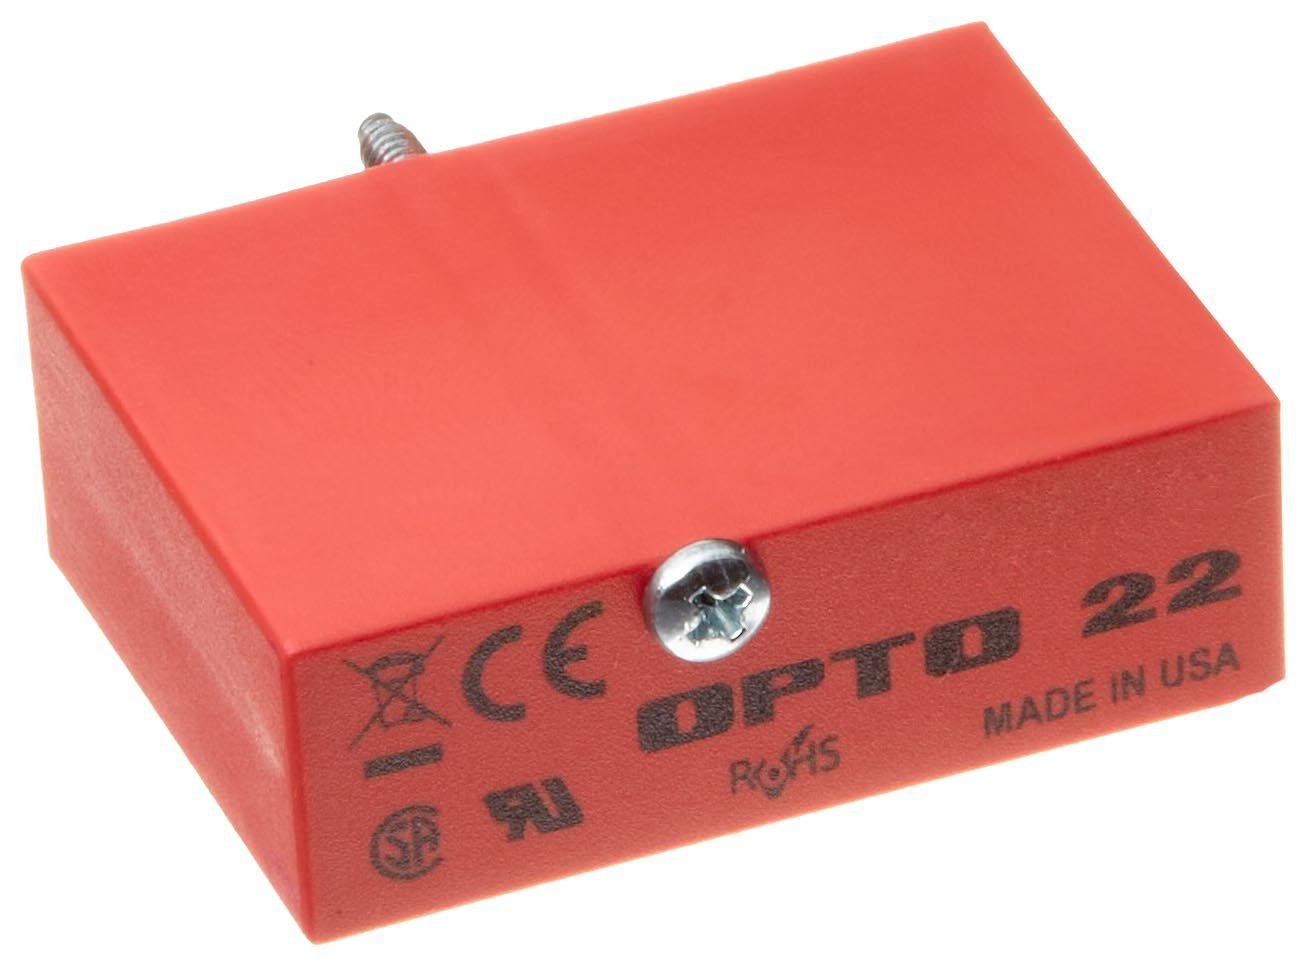 15 VDC Logic Opto 22 ODC15A DC Output 5-200 VDC 100//750/µs Turn-on//off Time 4000 Volts I//O Isolation